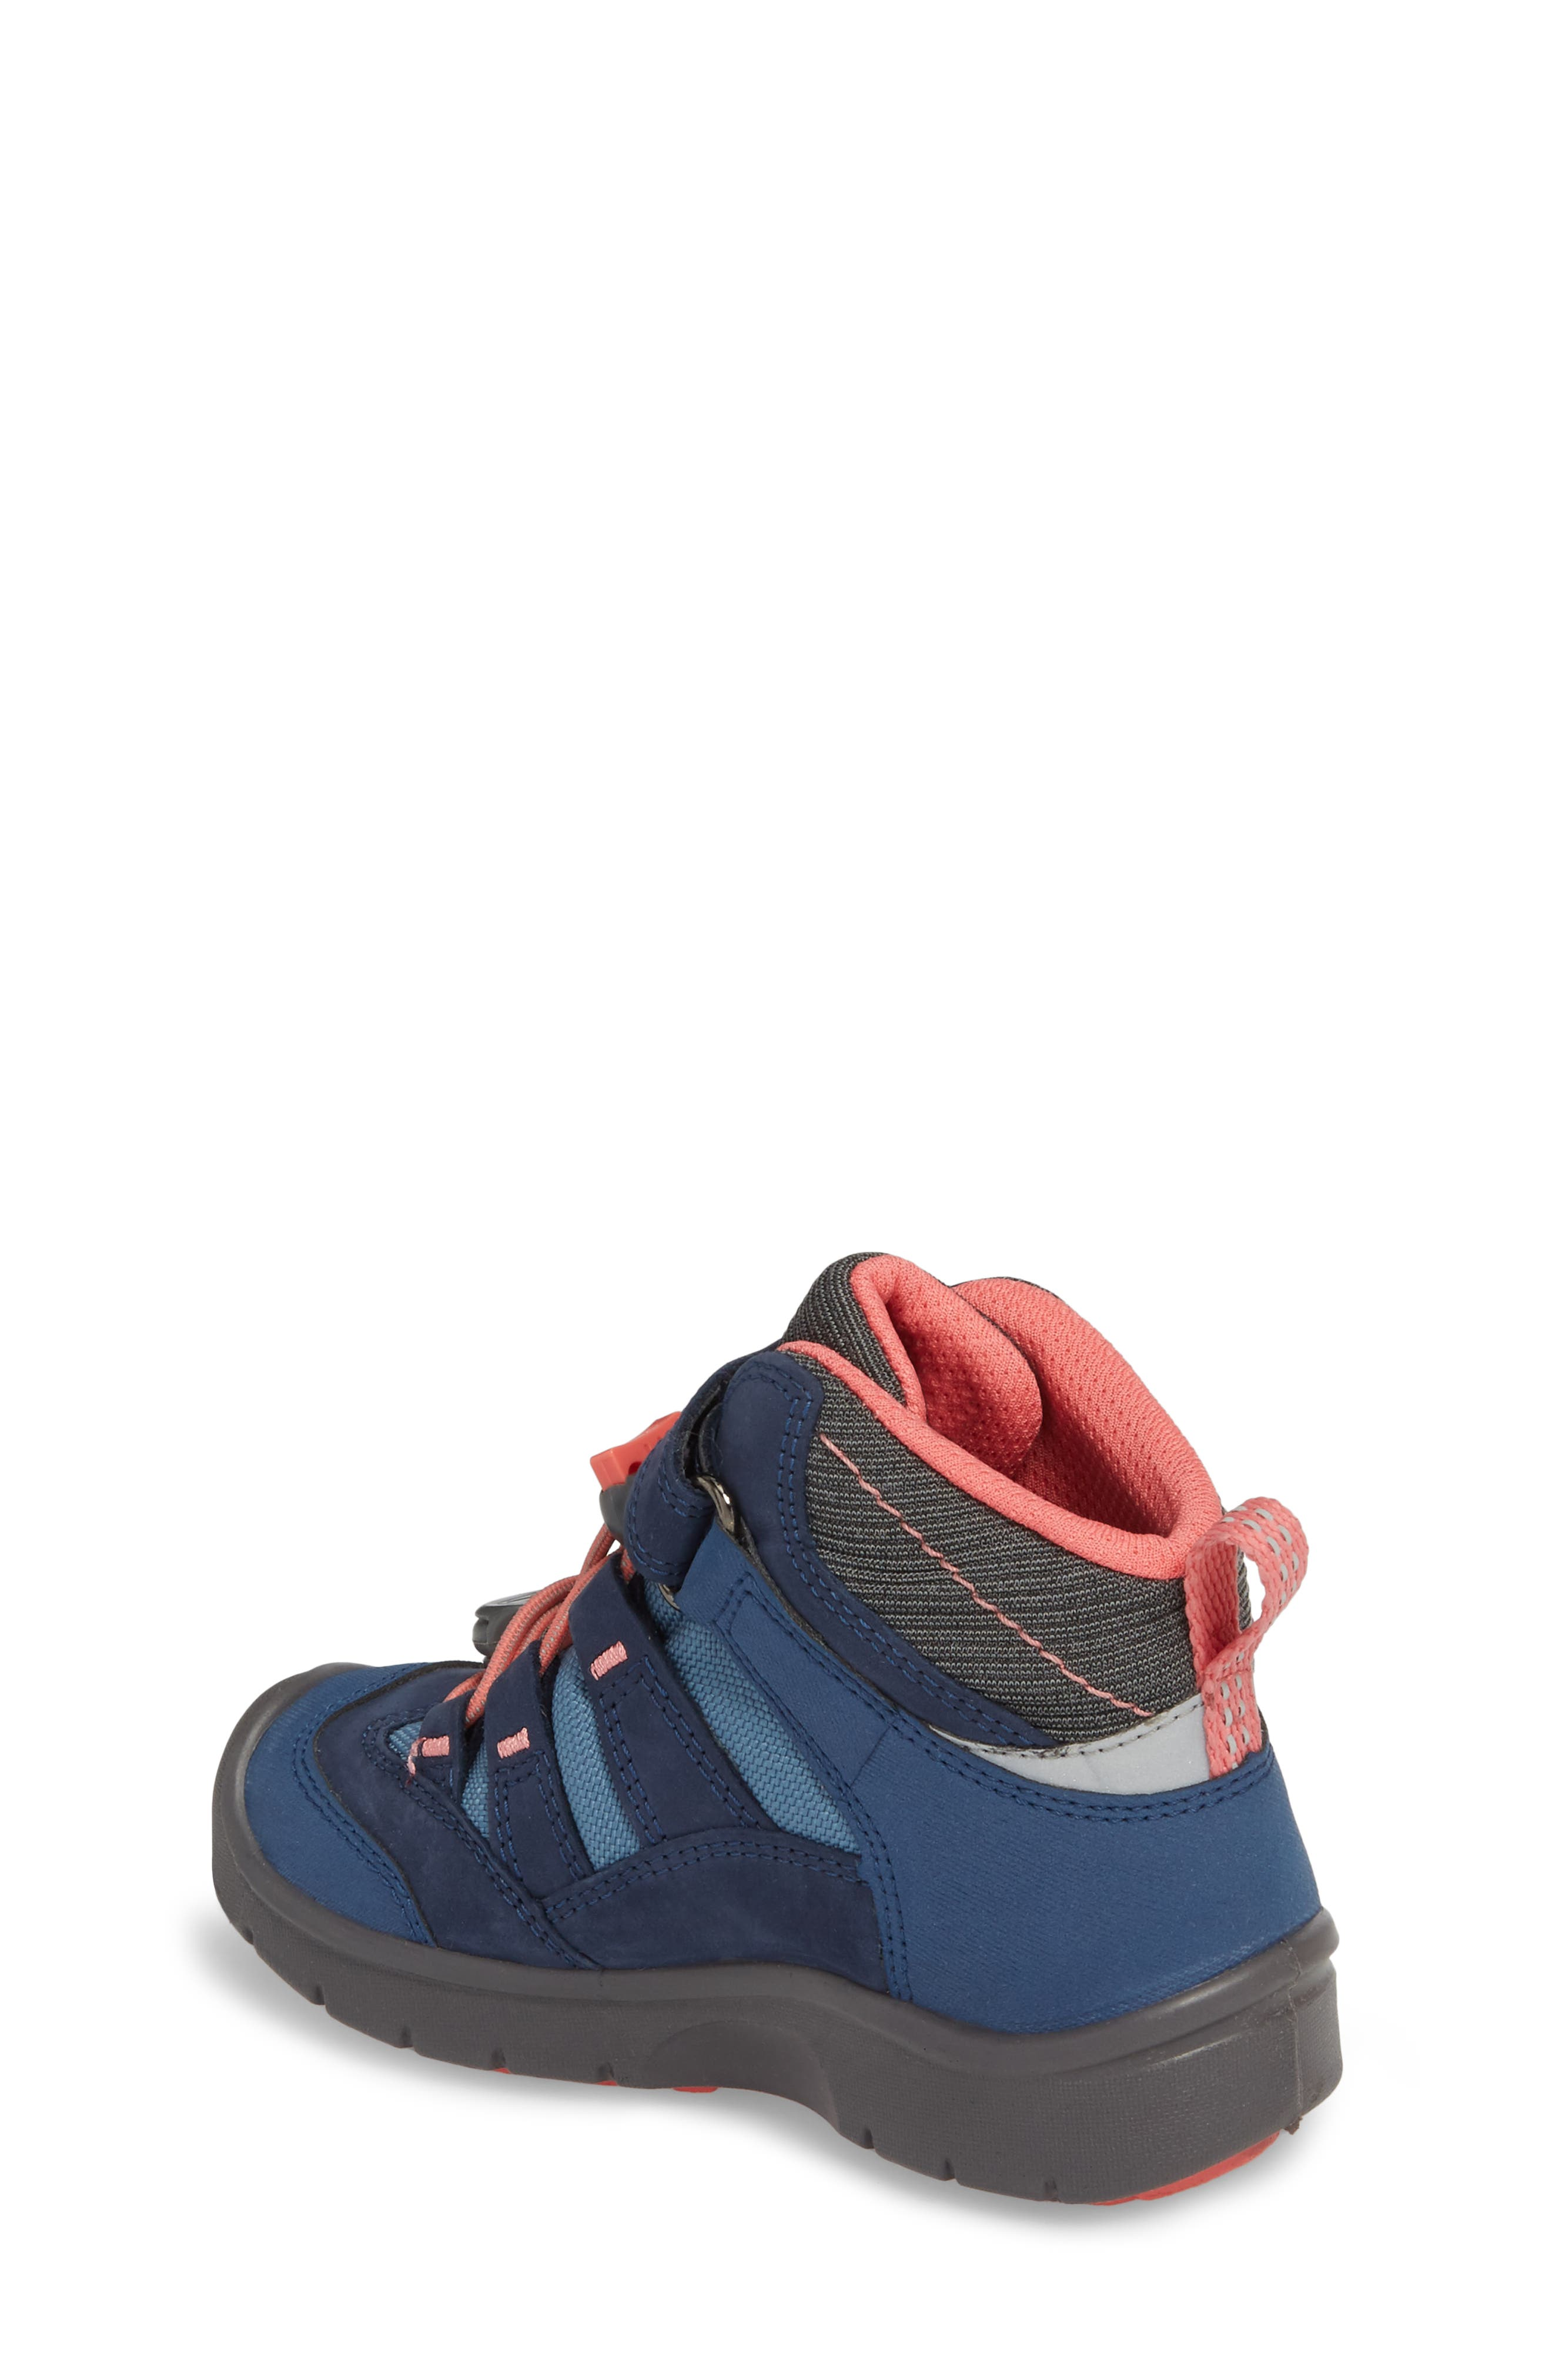 Hikeport Strap Waterproof Mid Boot,                             Alternate thumbnail 2, color,                             Dress Blues/ Sugar Coral